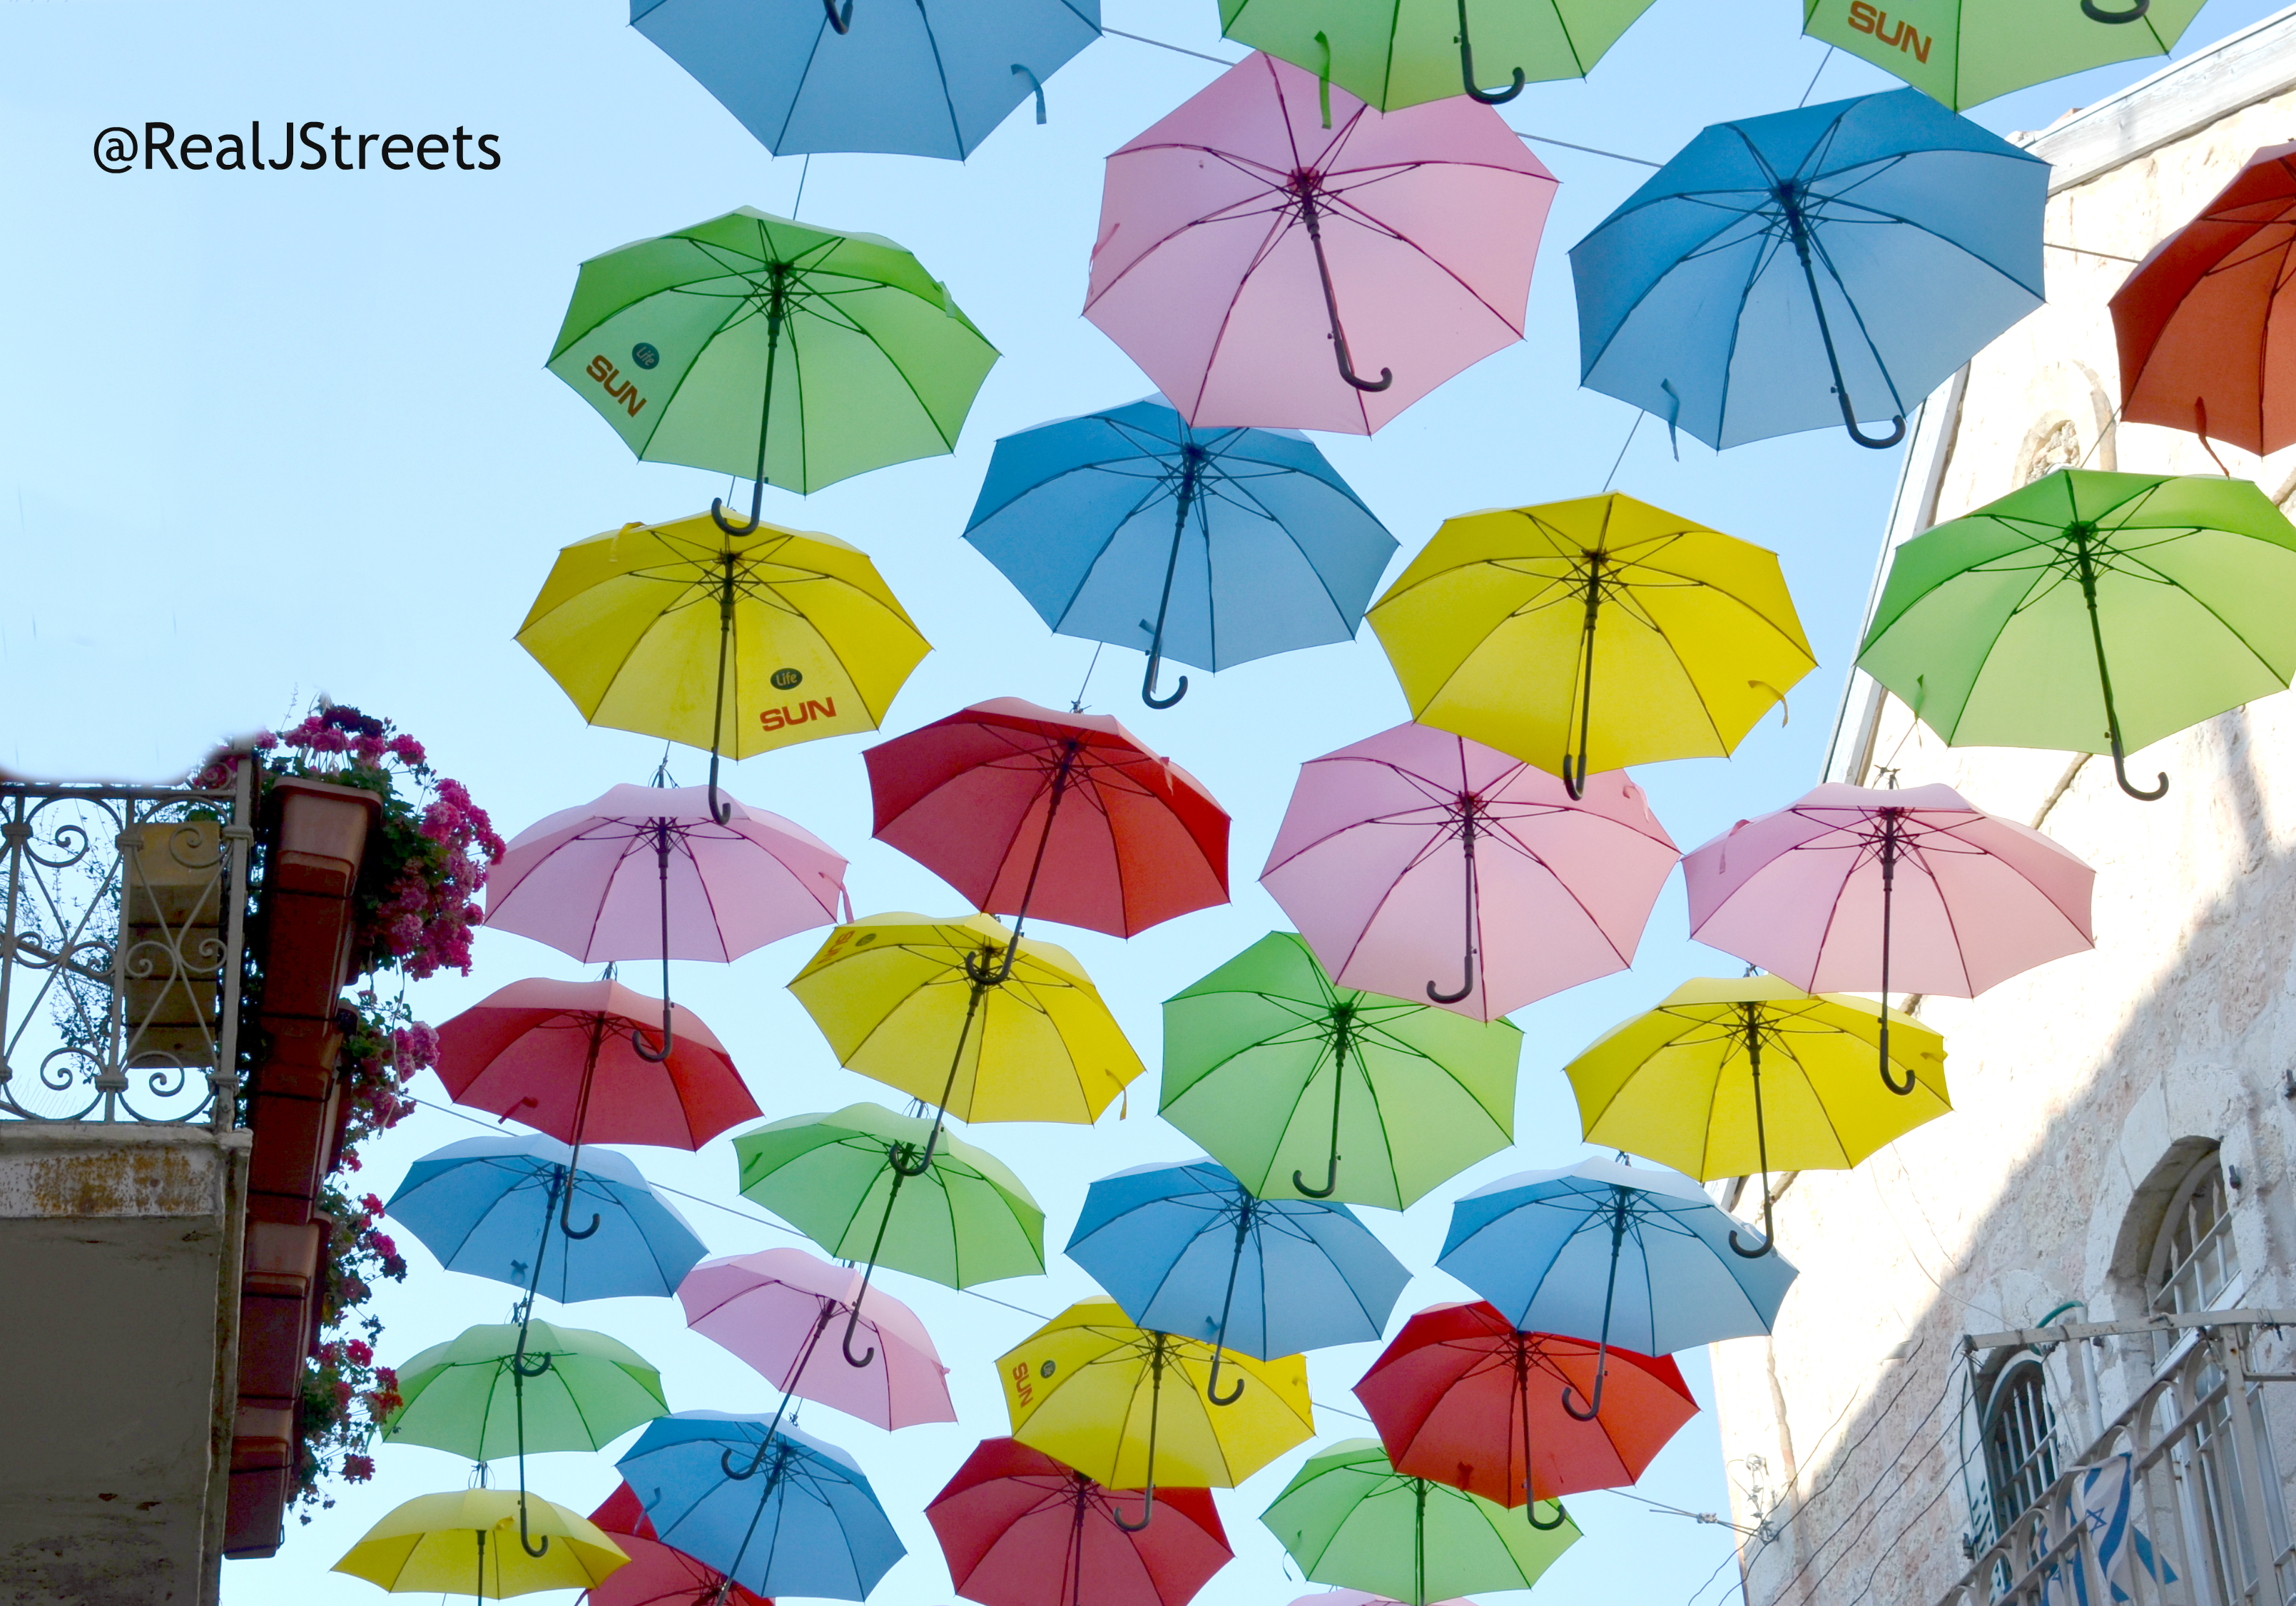 Jerusalem umbrellas over street